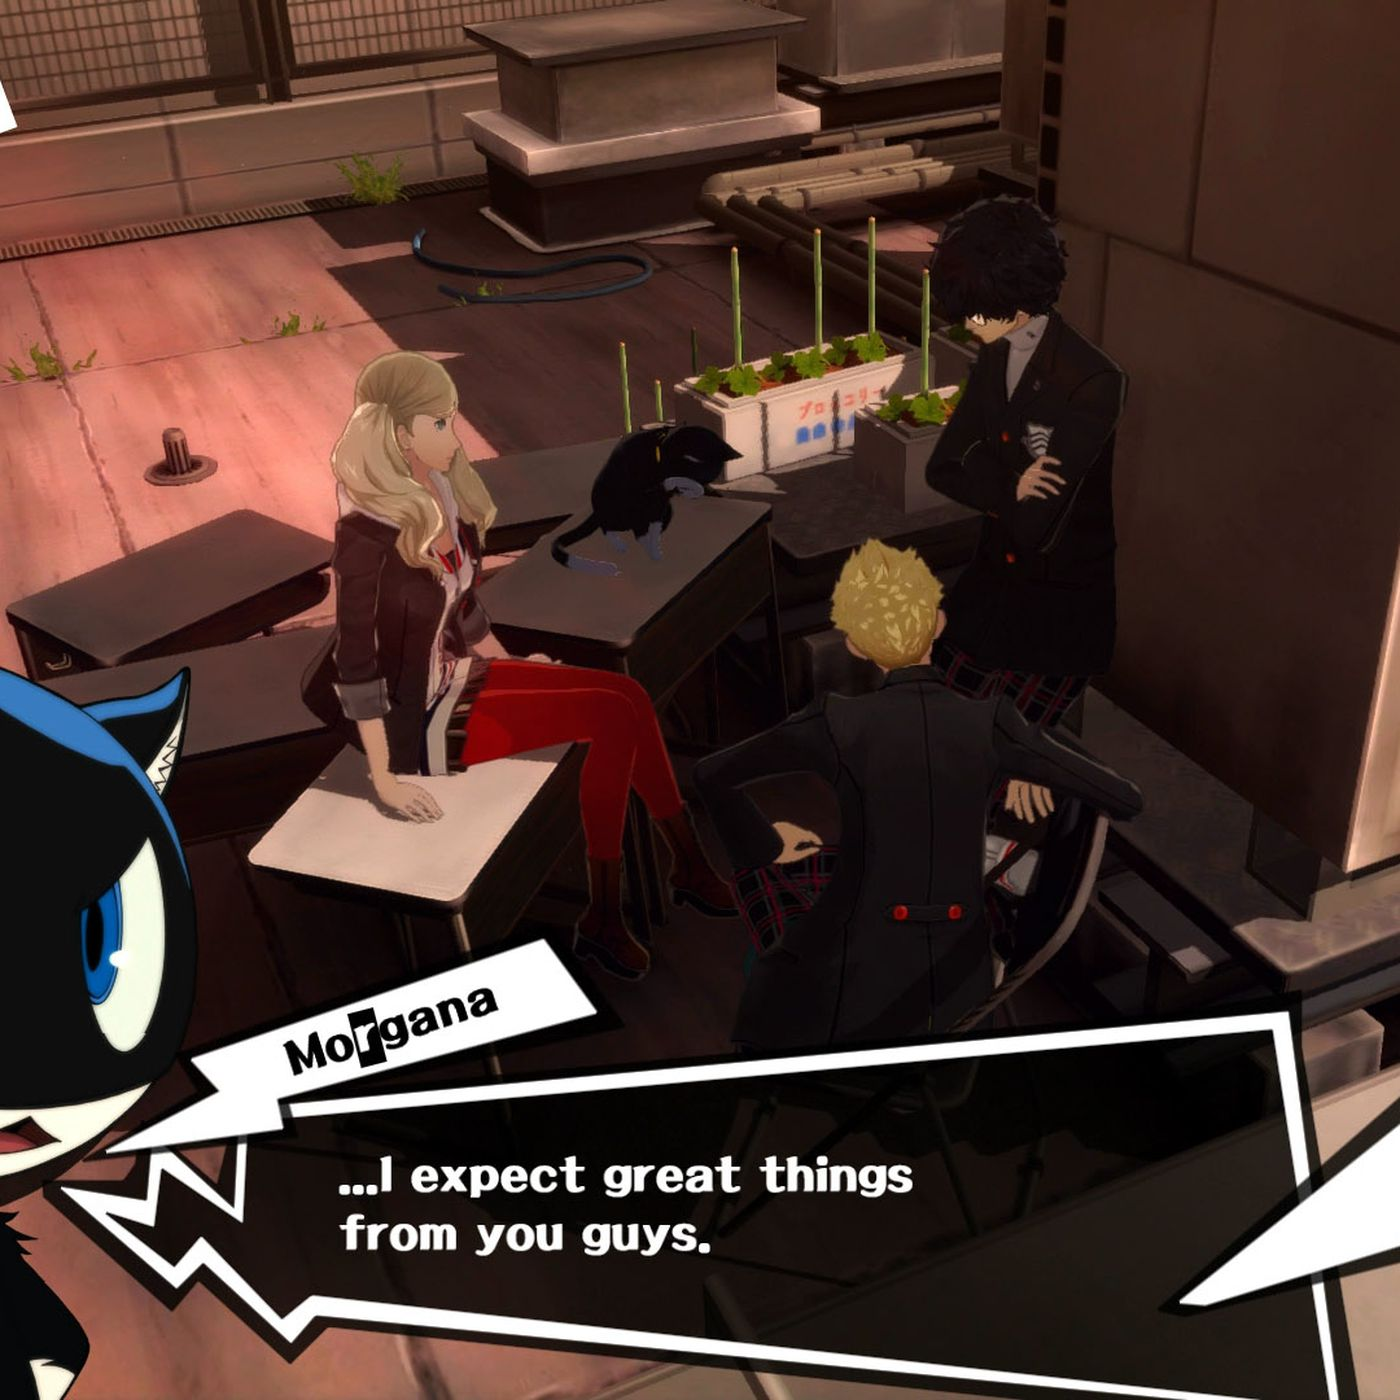 Persona 5 S Pop Culture References Are The Best Polygon